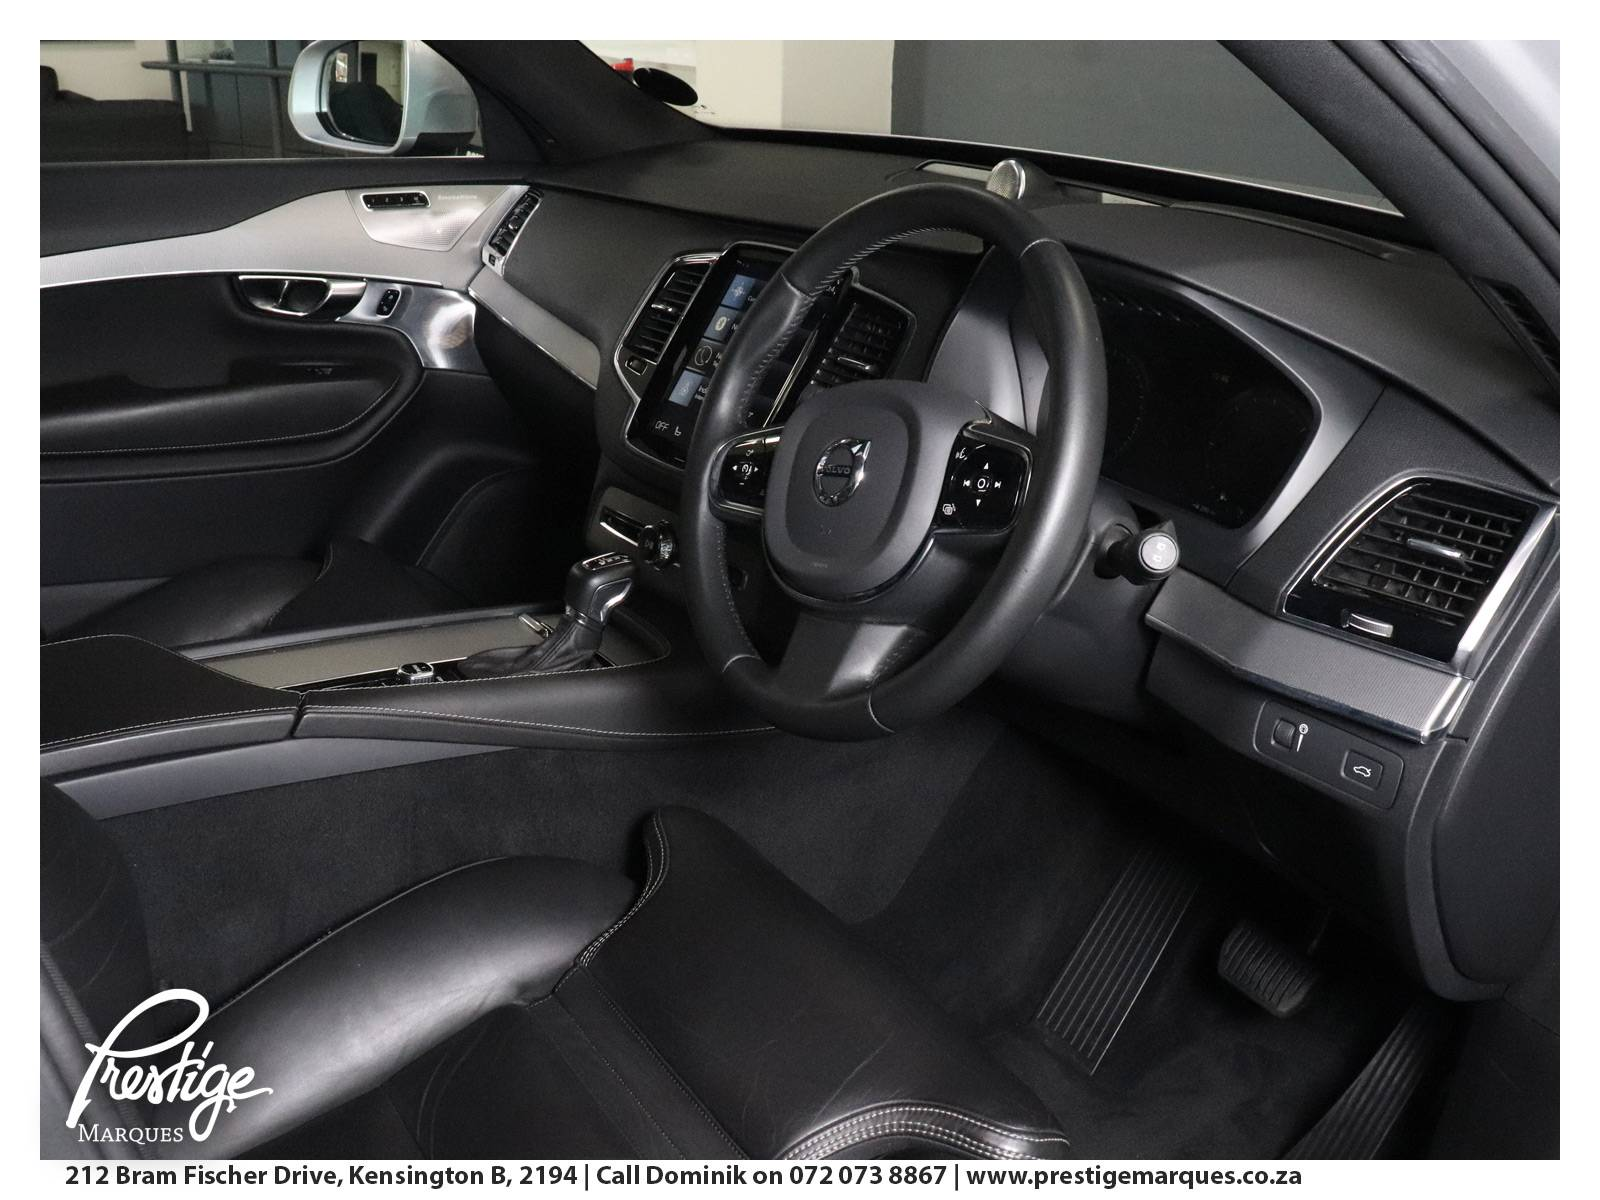 Volvo-XC90-D5-Inscription-Prestige-Marques-Randburg-Sandton-10